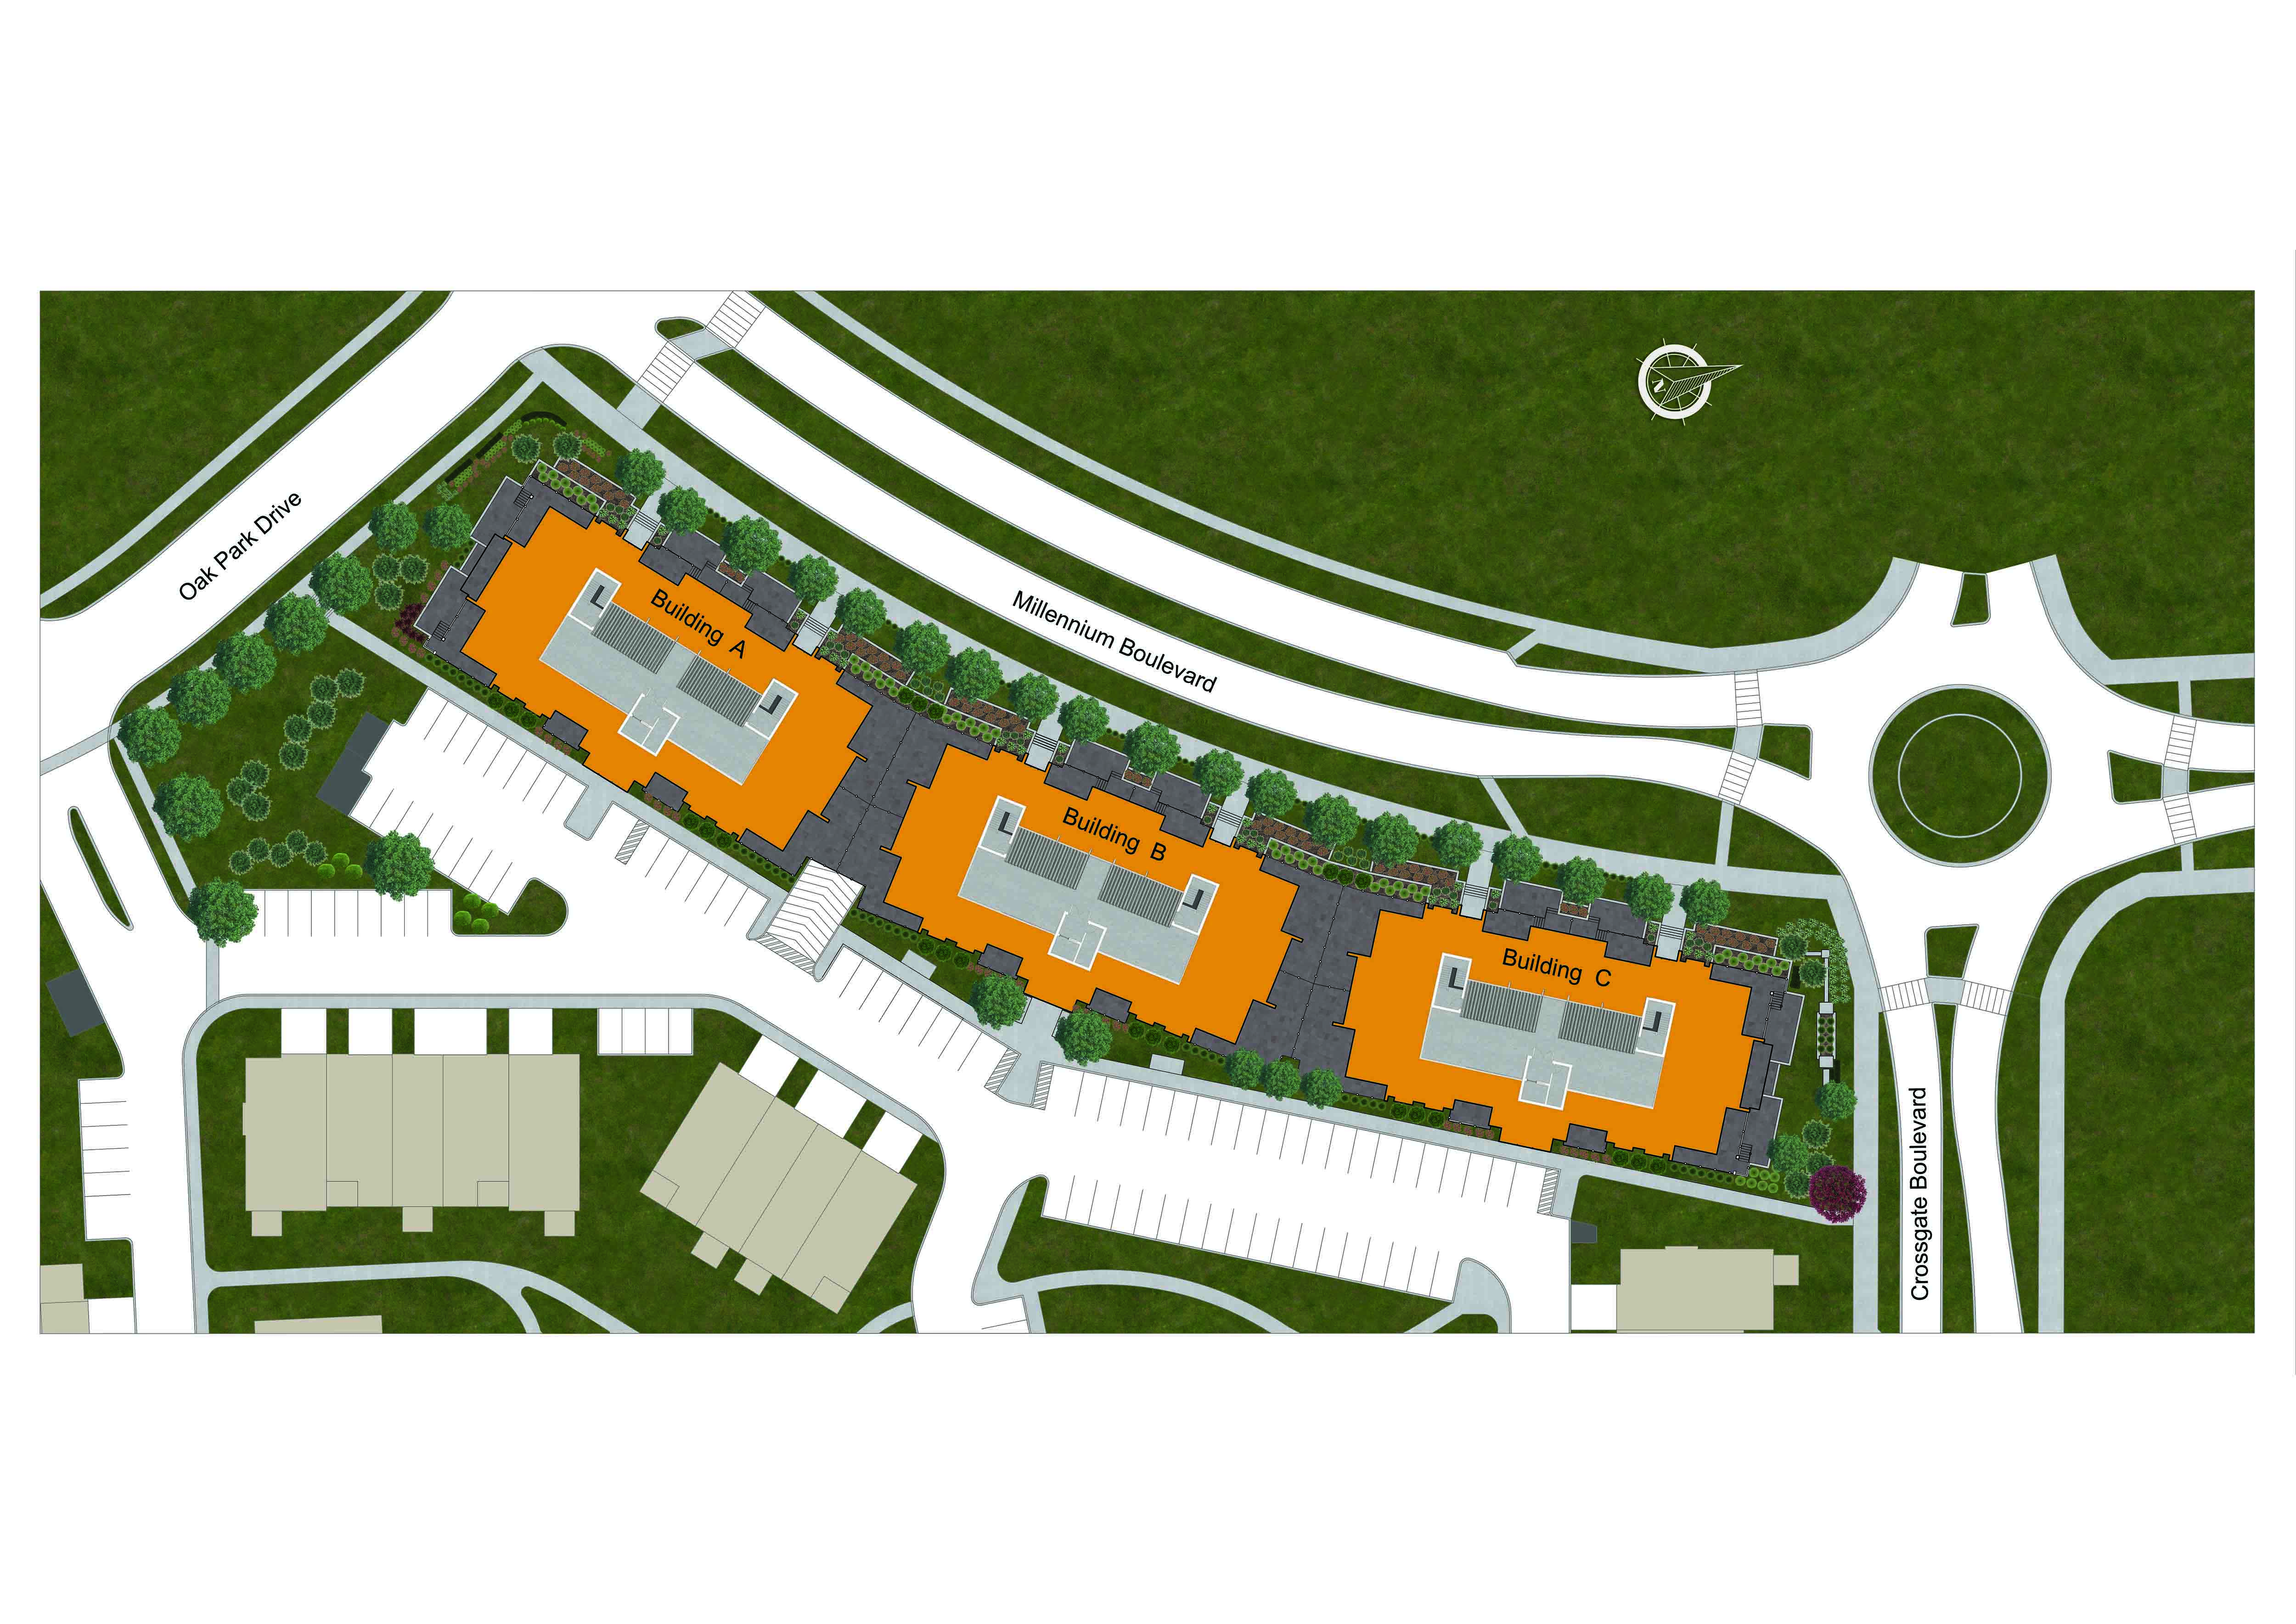 Site plan for Trailside in Waterloo, Ontario